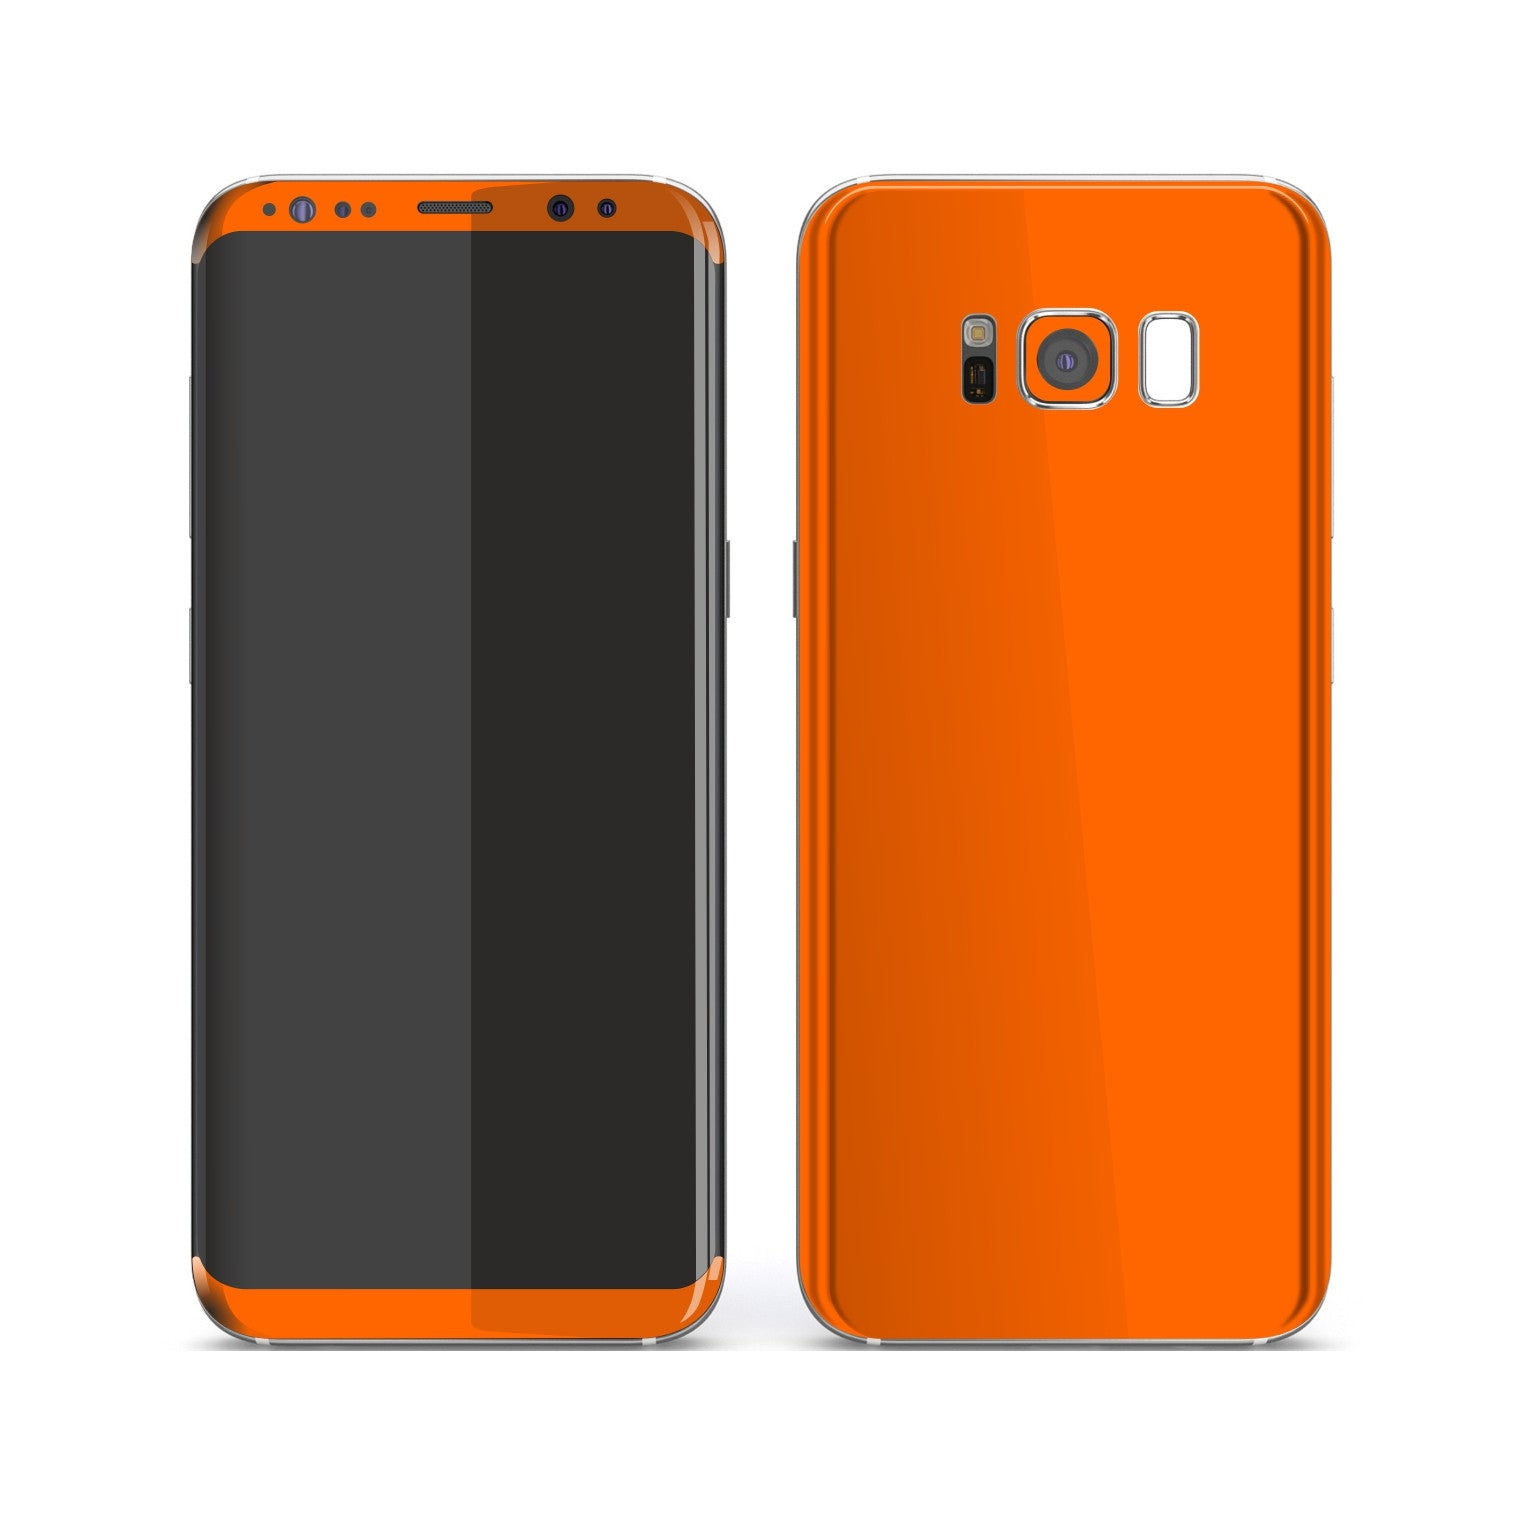 Samsung Galaxy S8 Orange Glossy Gloss Finish Skin, Decal, Wrap, Protector, Cover by EasySkinz | EasySkinz.com